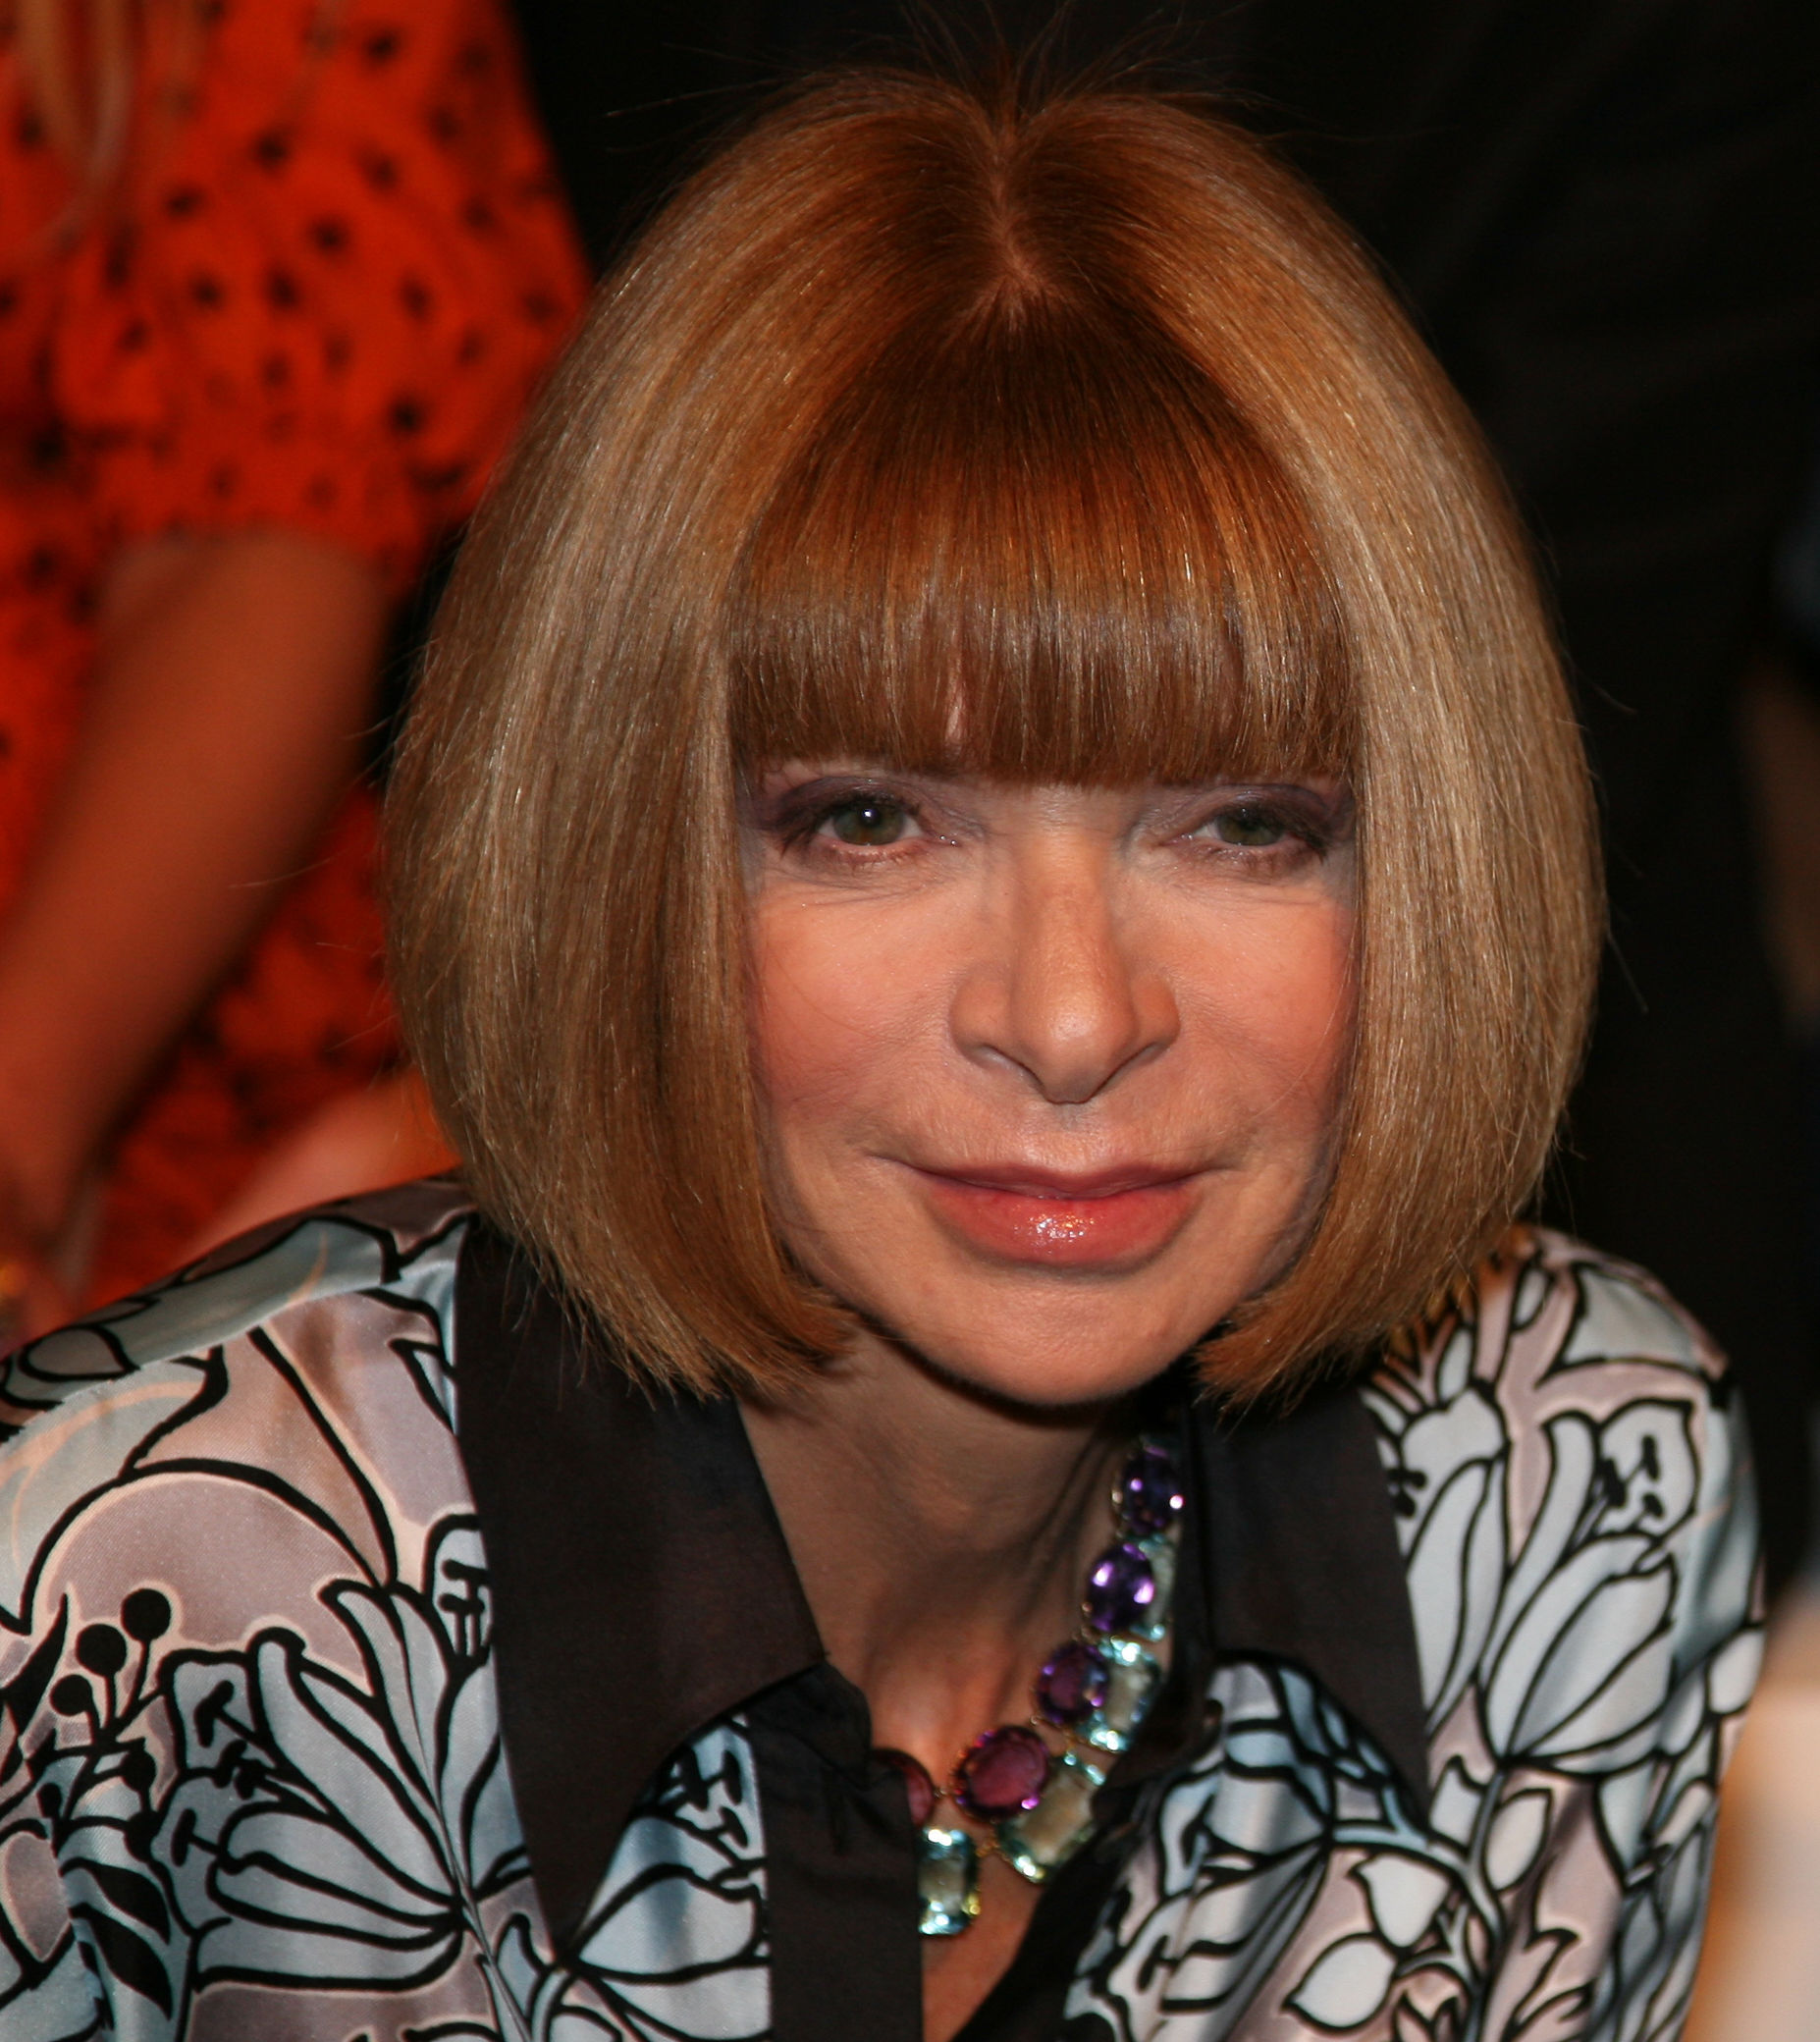 Photo of Anna Wintour: English editor-in-chief of American Vogue